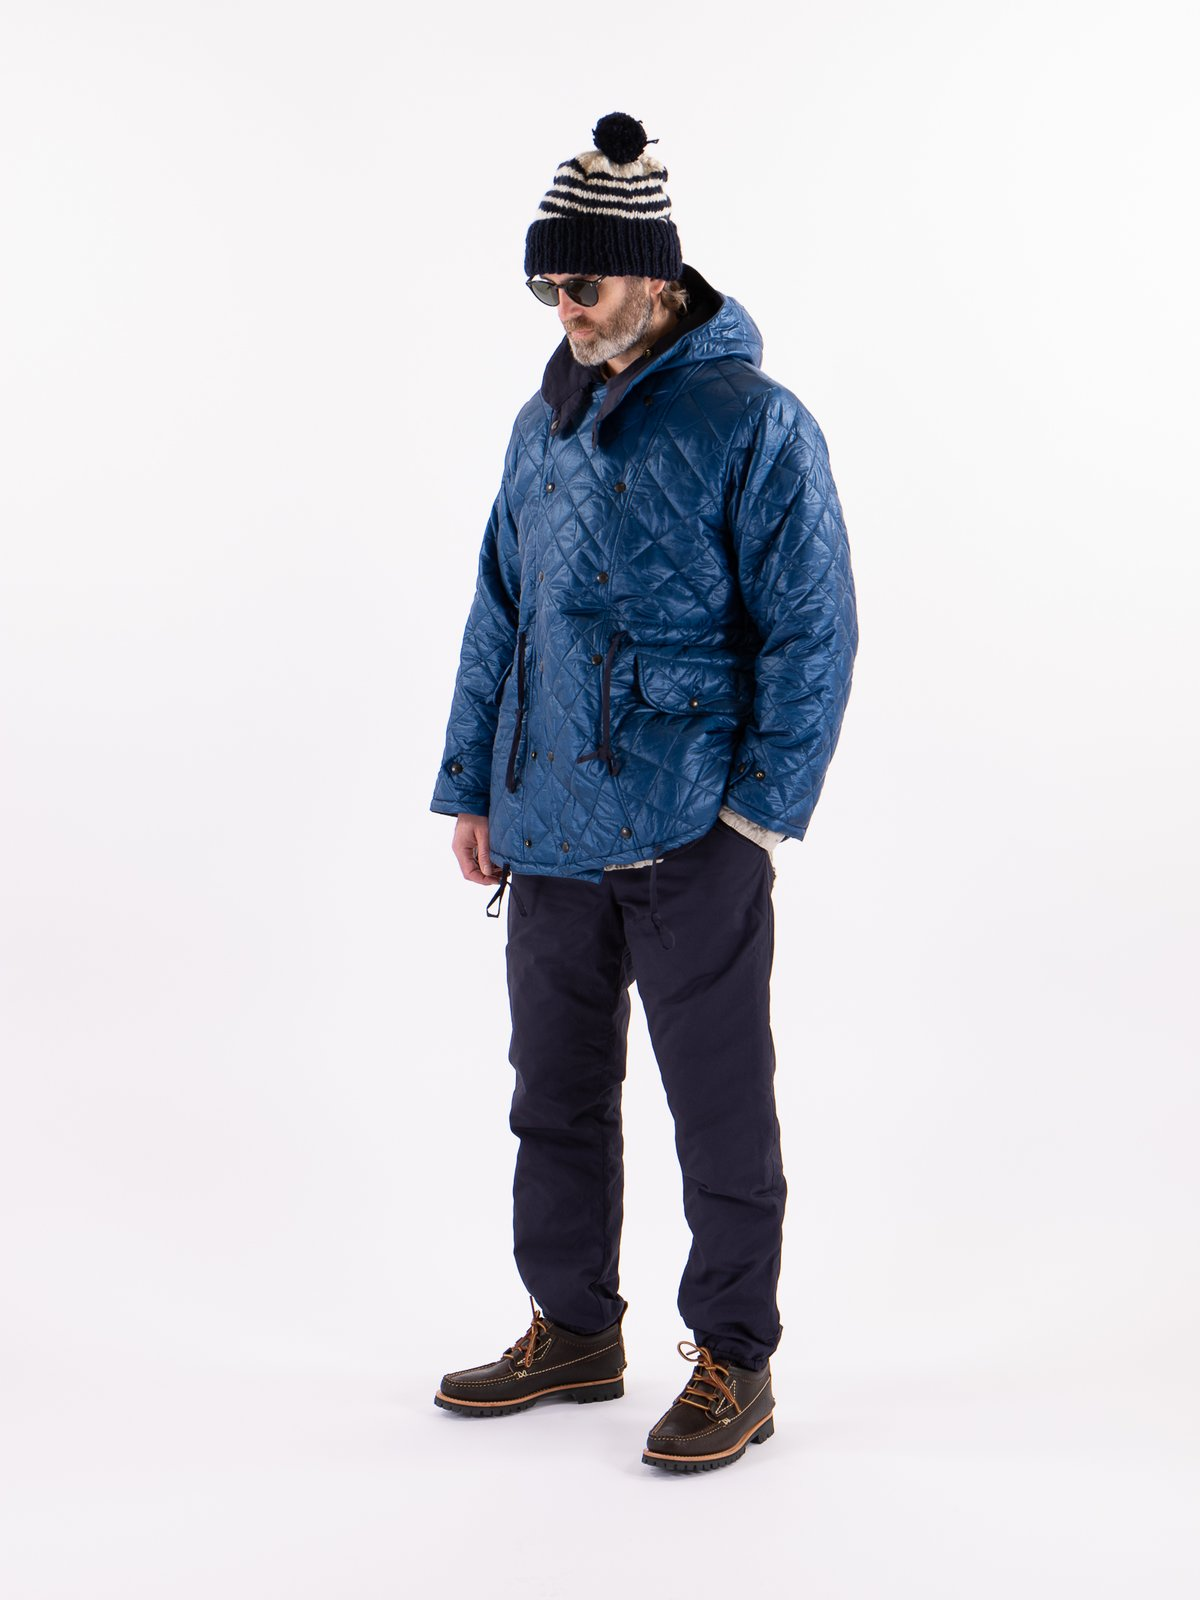 Navy 3oz Zigzag Dotera Fill Hooded Quilted Jacket - Image 2